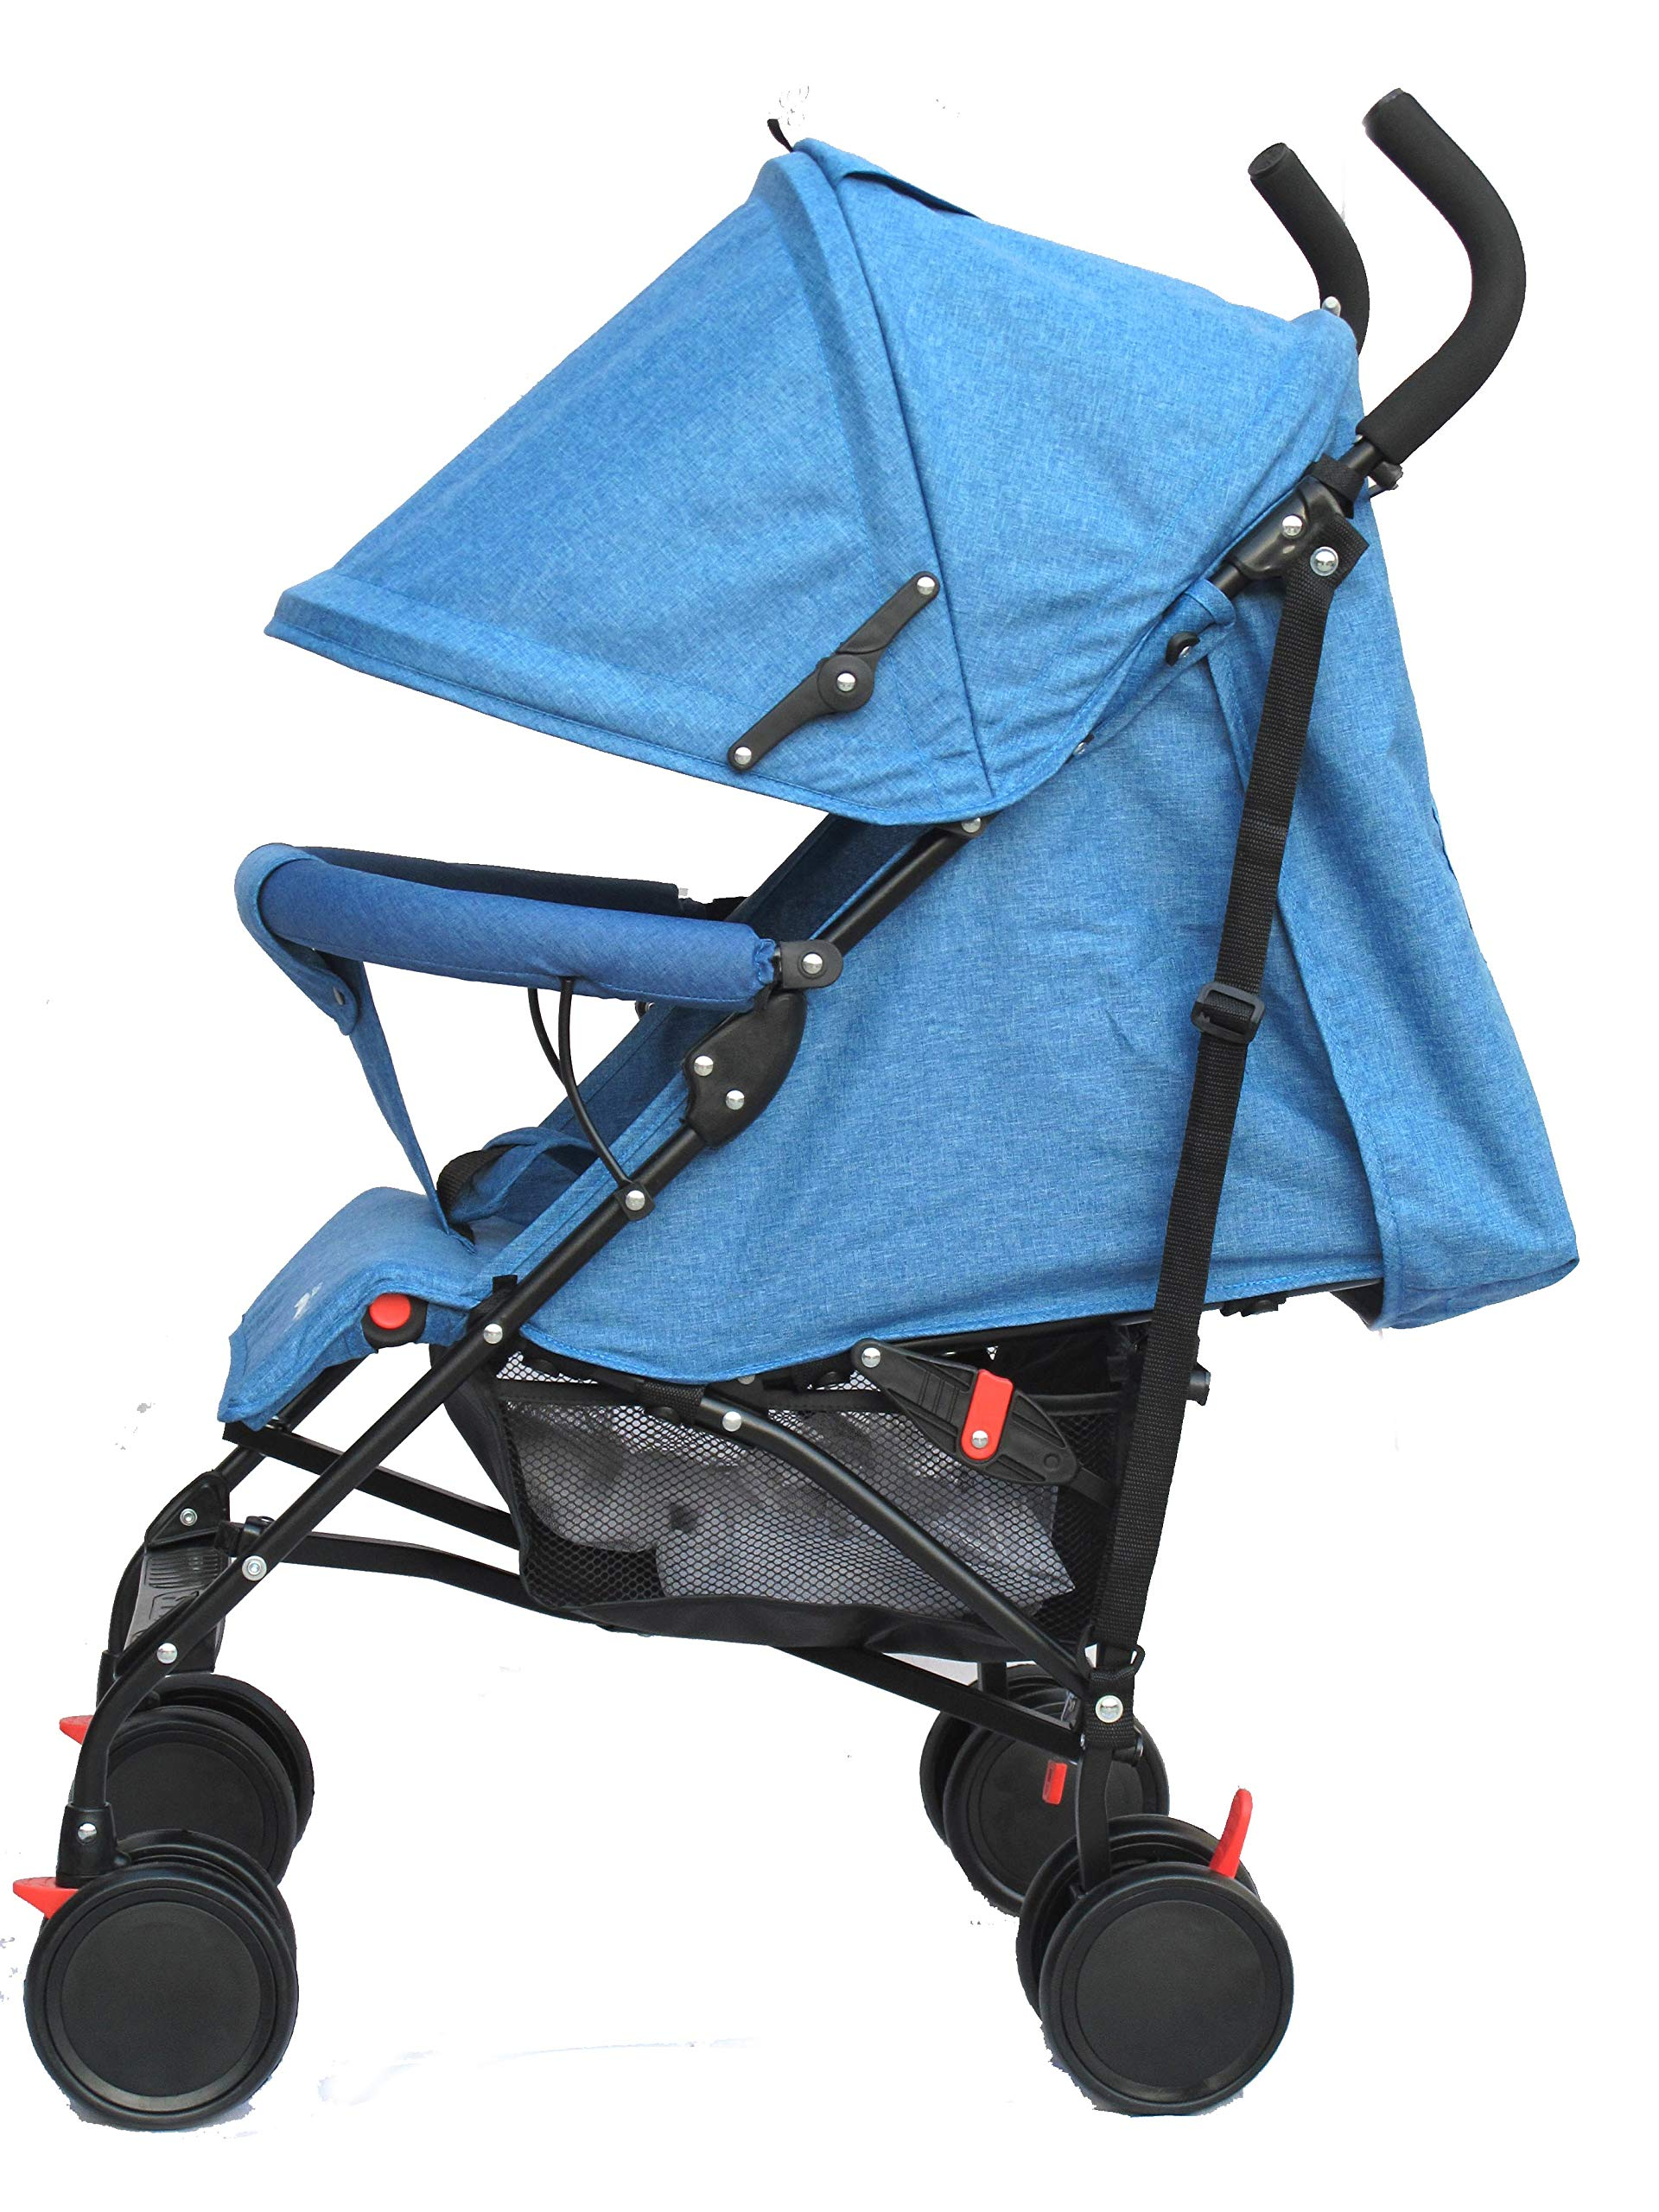 Stroller for Kids Lightweight Buggy Easy Fold Travel Stroller Buggy Foldable for Travel (Blue) Little Bambino ✨Extendable upf 50+ sun canopy and built-in sun visor ✨EASY USAGE - One-hand foldable buggy makes taking your baby for travels or walks a simple pleasure. It could stand on its own so you could take care of your baby with less things to worry about. ✨ADJUSTABLE BACKREST - Travel stroller backrest can be adjusted. Suitable for children from 0 to 36 months 3